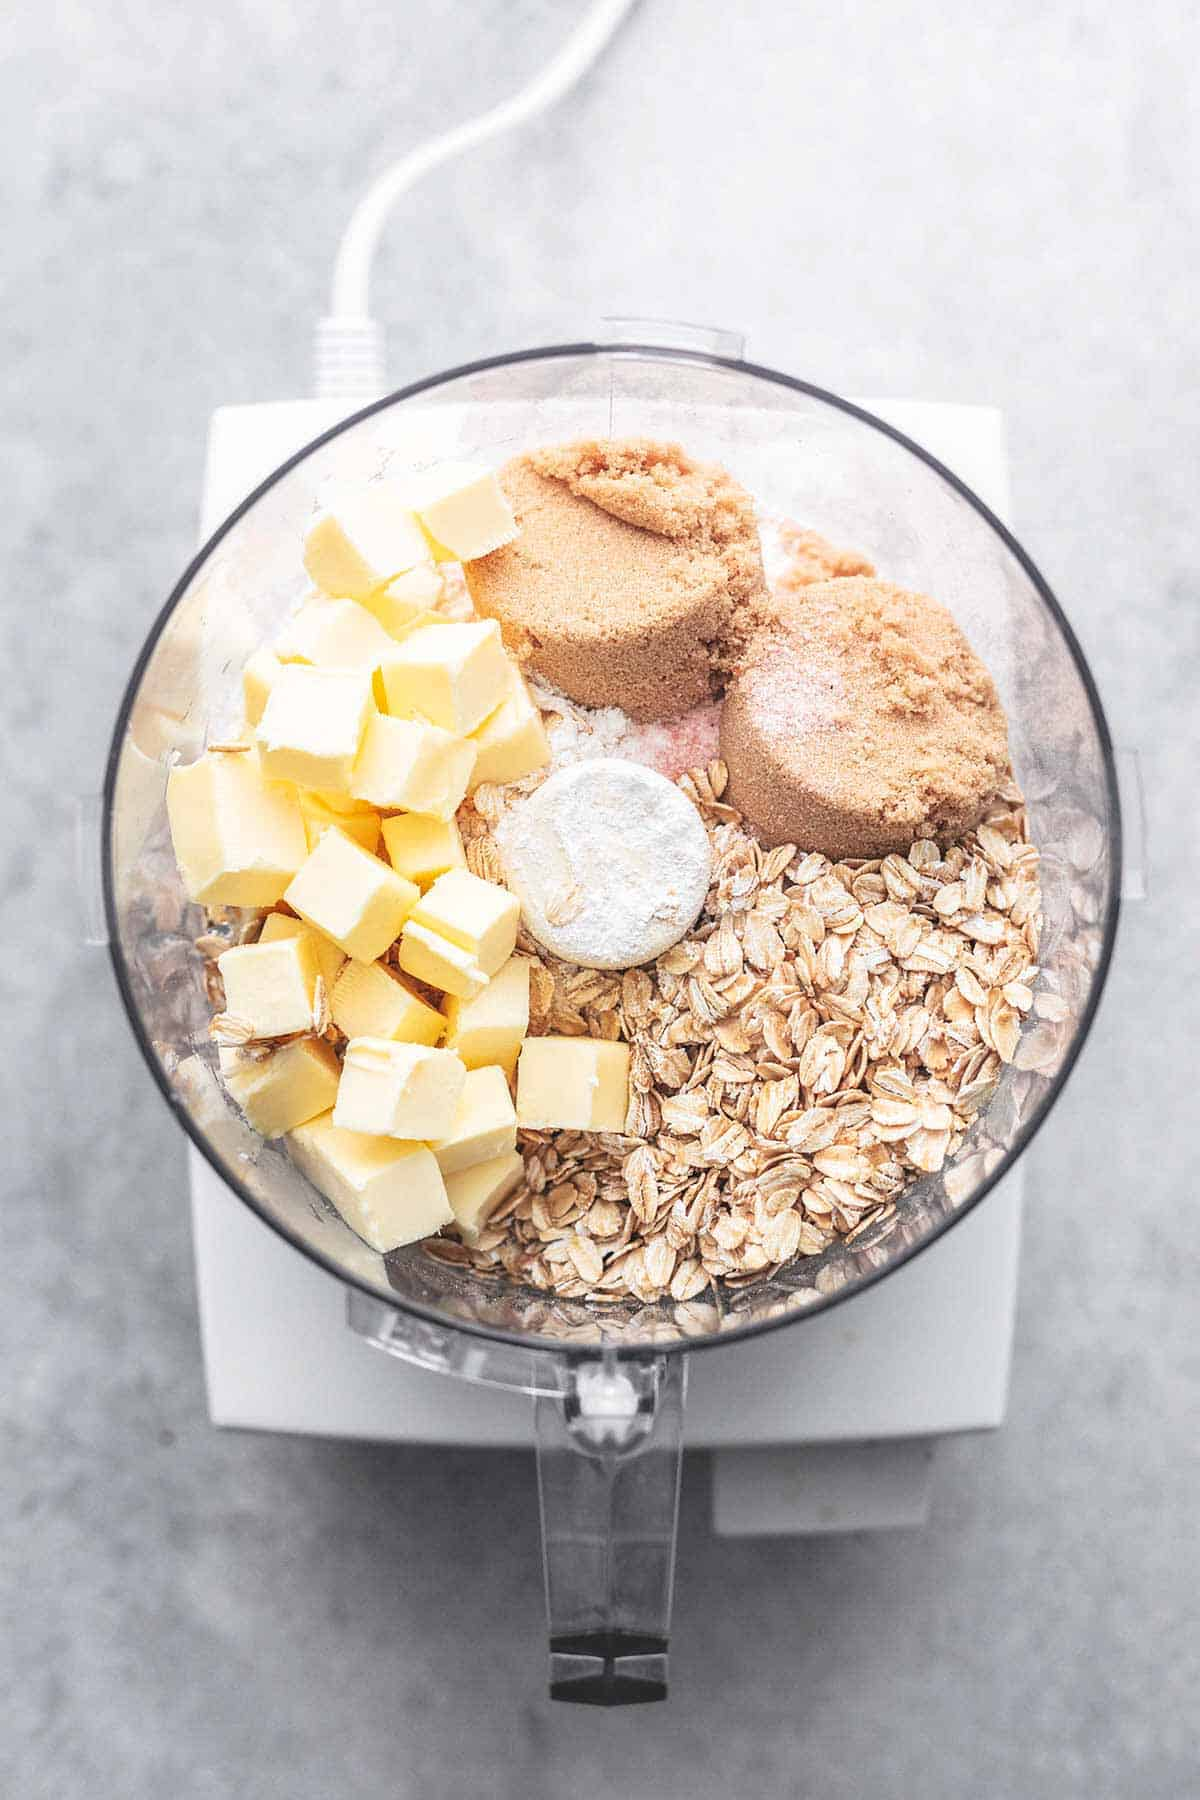 ingredients for crumb topping in food processor